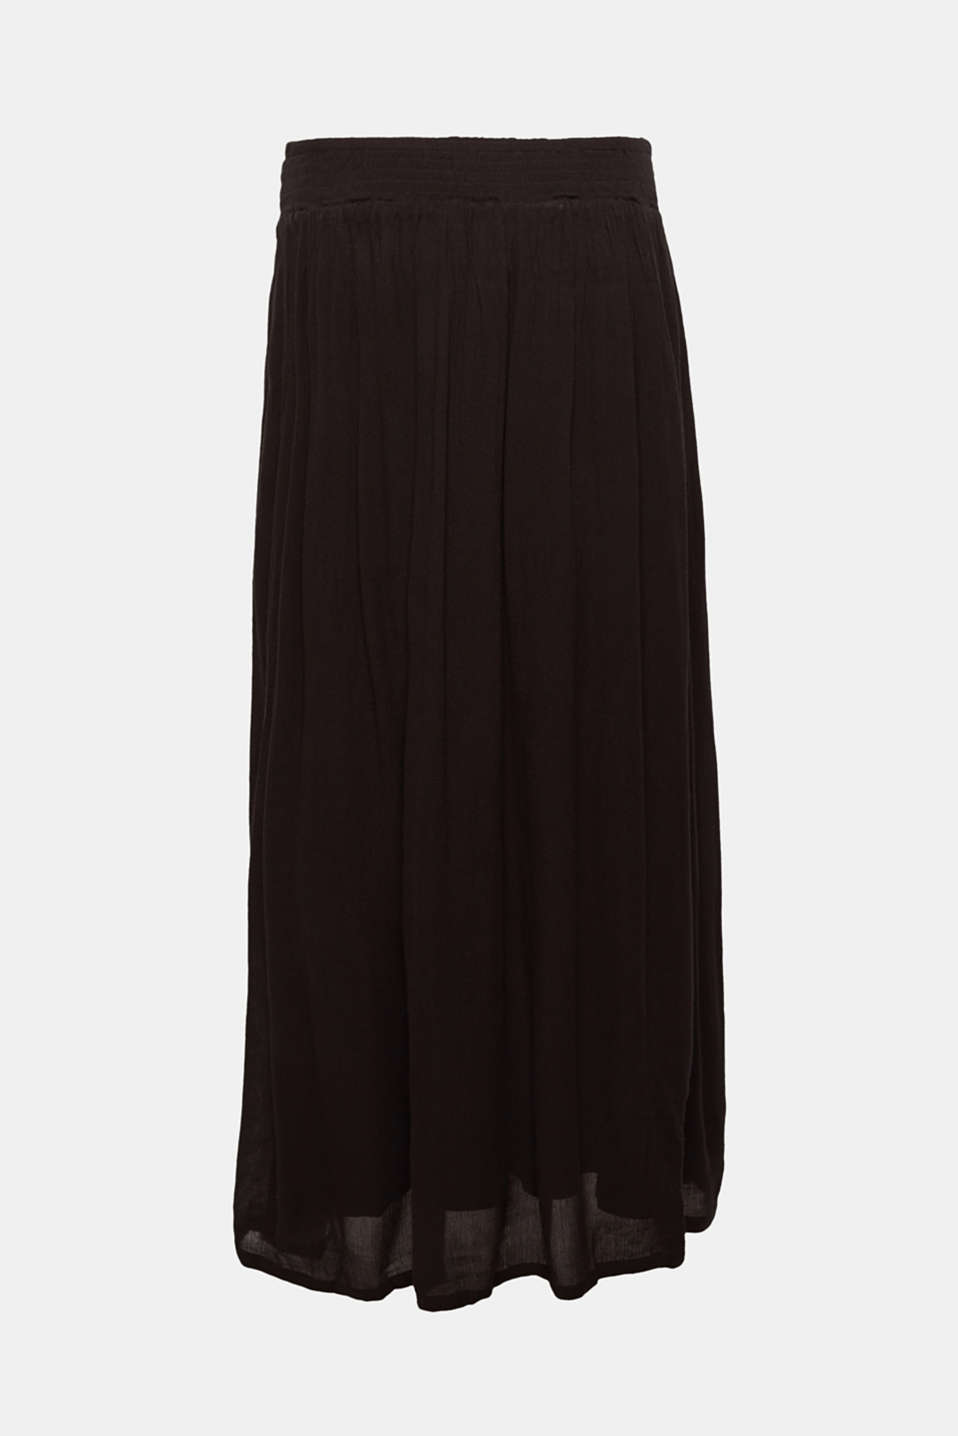 Trendy crinkle maxi skirt with an under-bump waistband, LCBLACK, detail image number 4